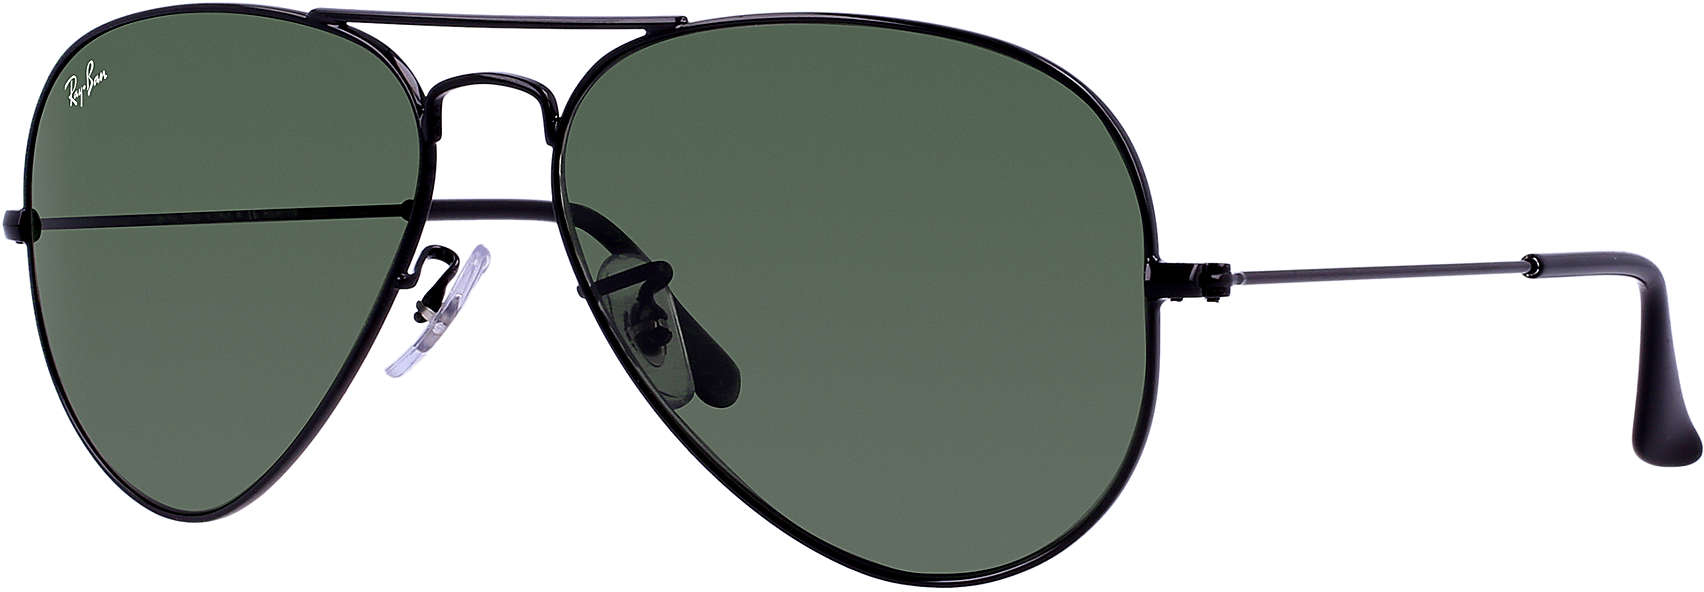 606a3c29083 Ray-Ban Aviator Large Metal II Sunglasses RB3026